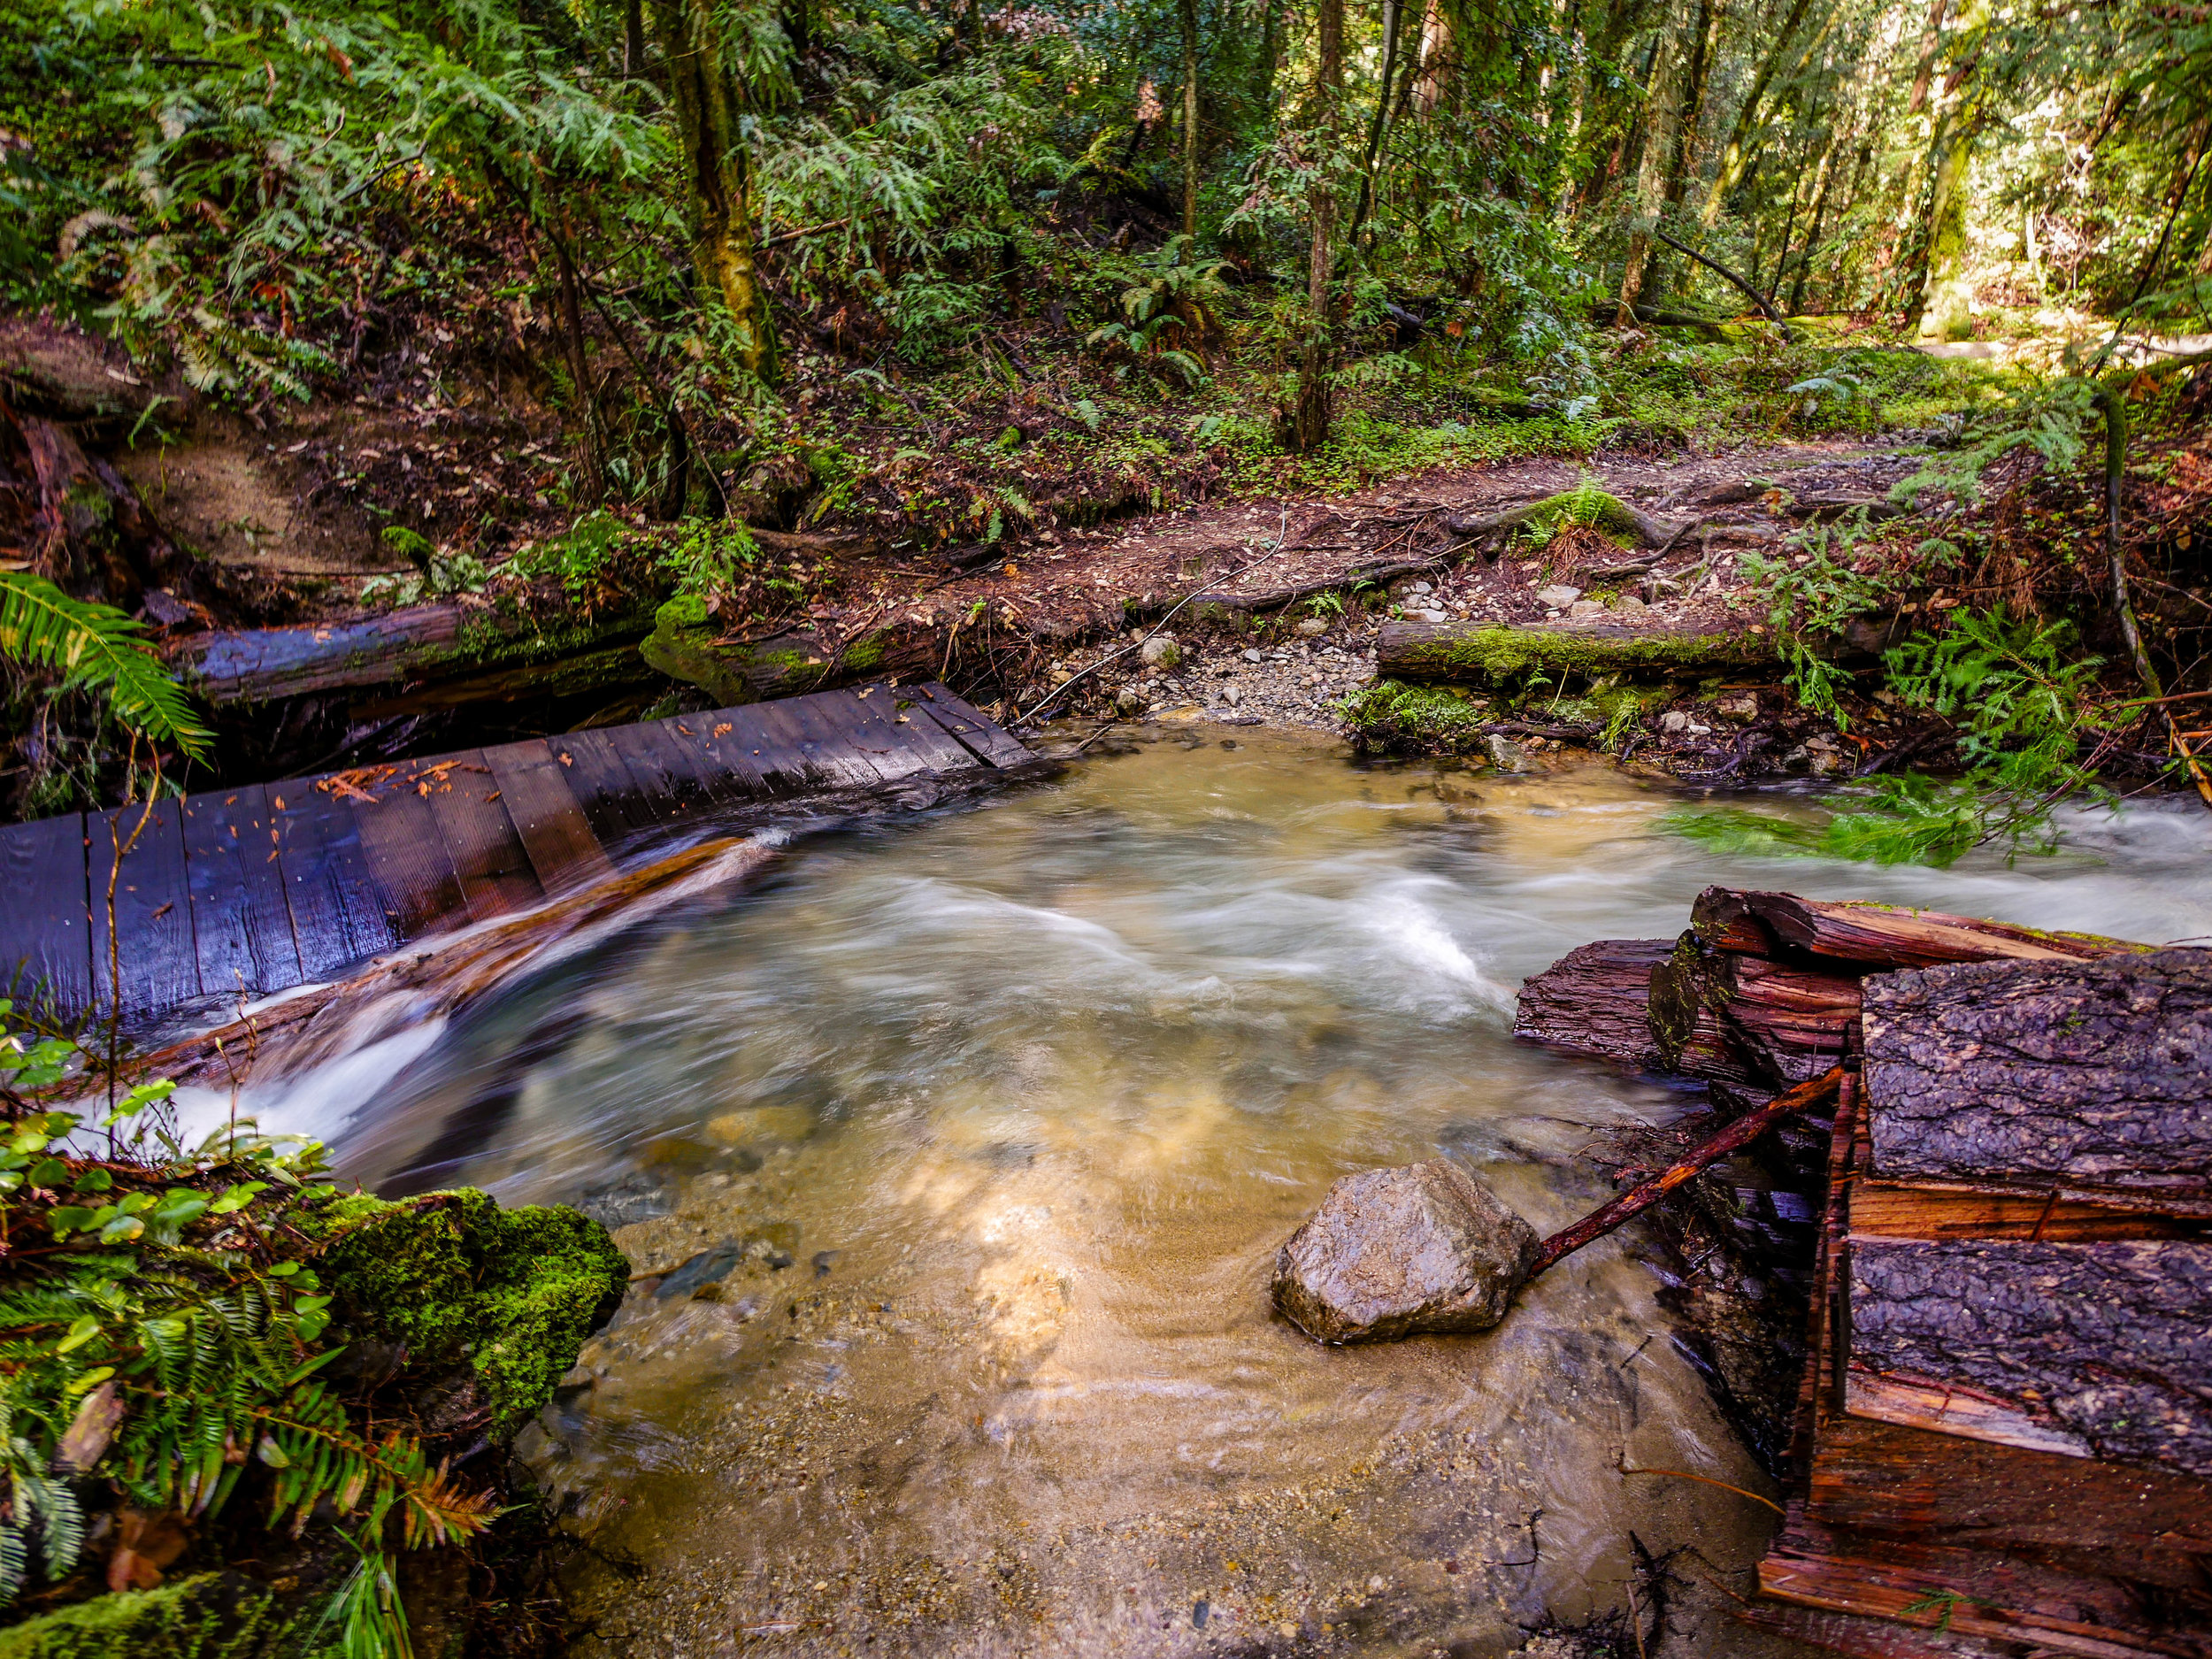 A washed out bridge and fast moving stream blocked the trail.